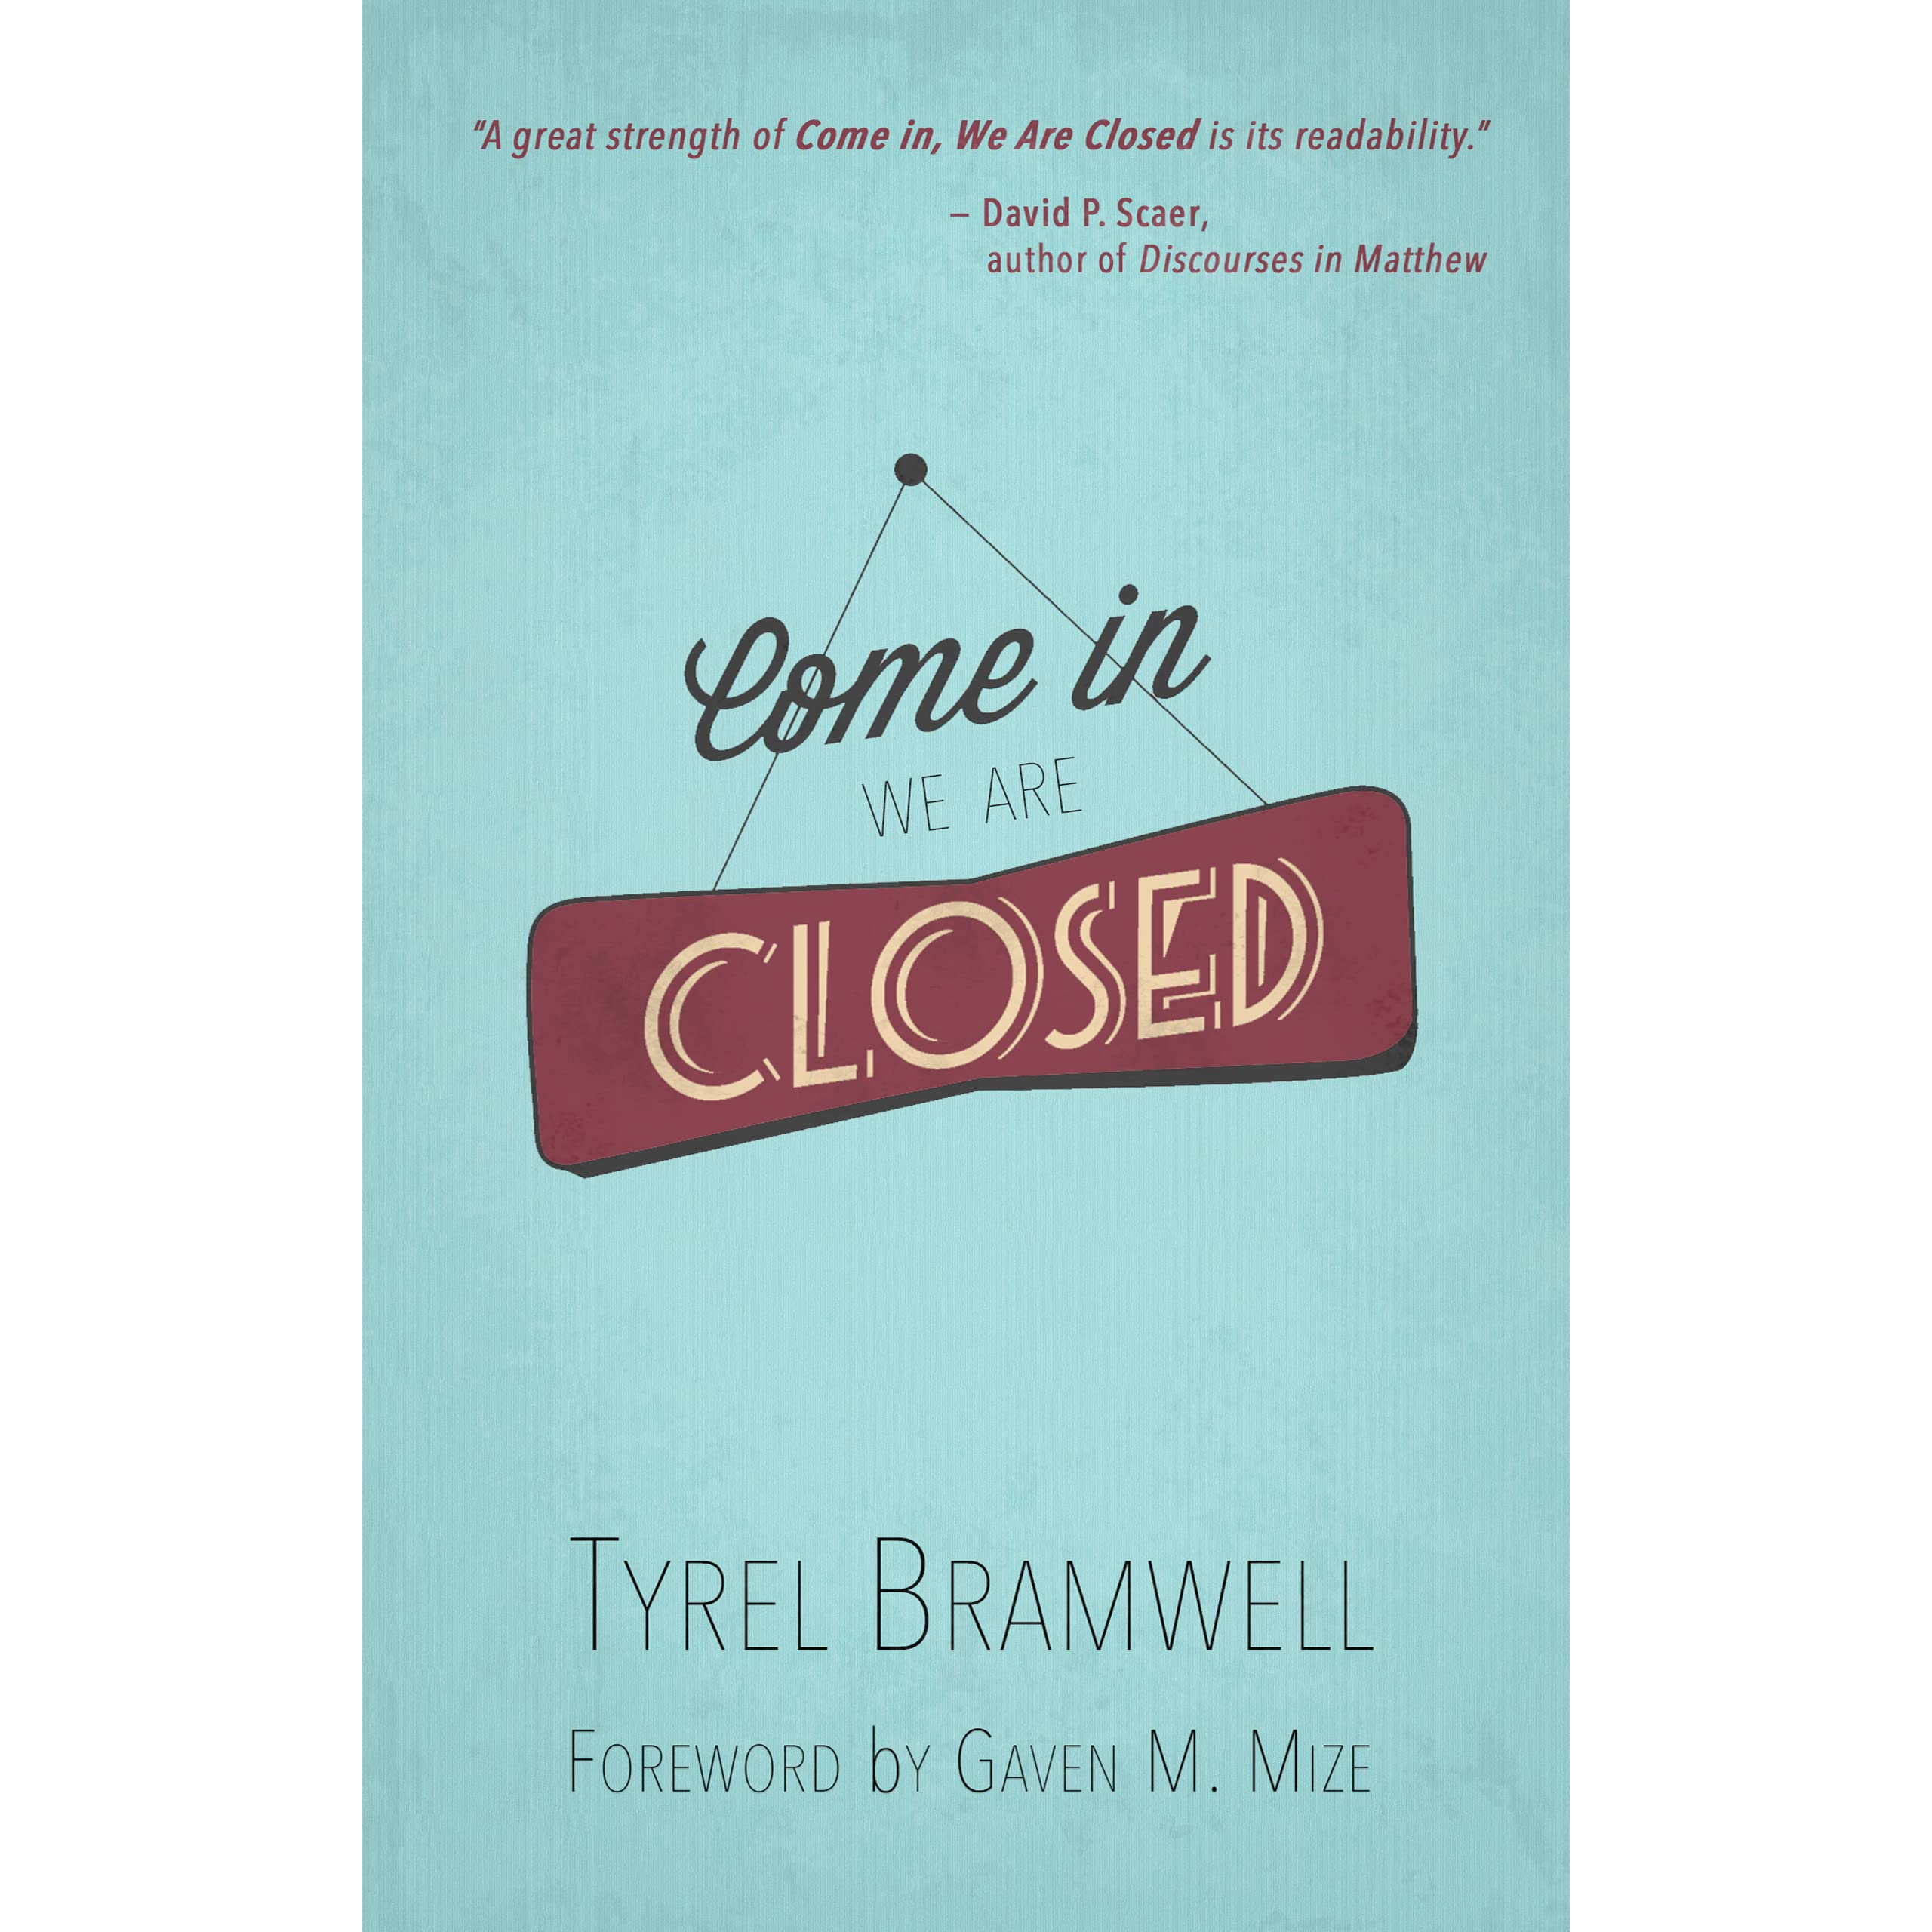 Come in, We Are Closed by Tyrel Bramwell